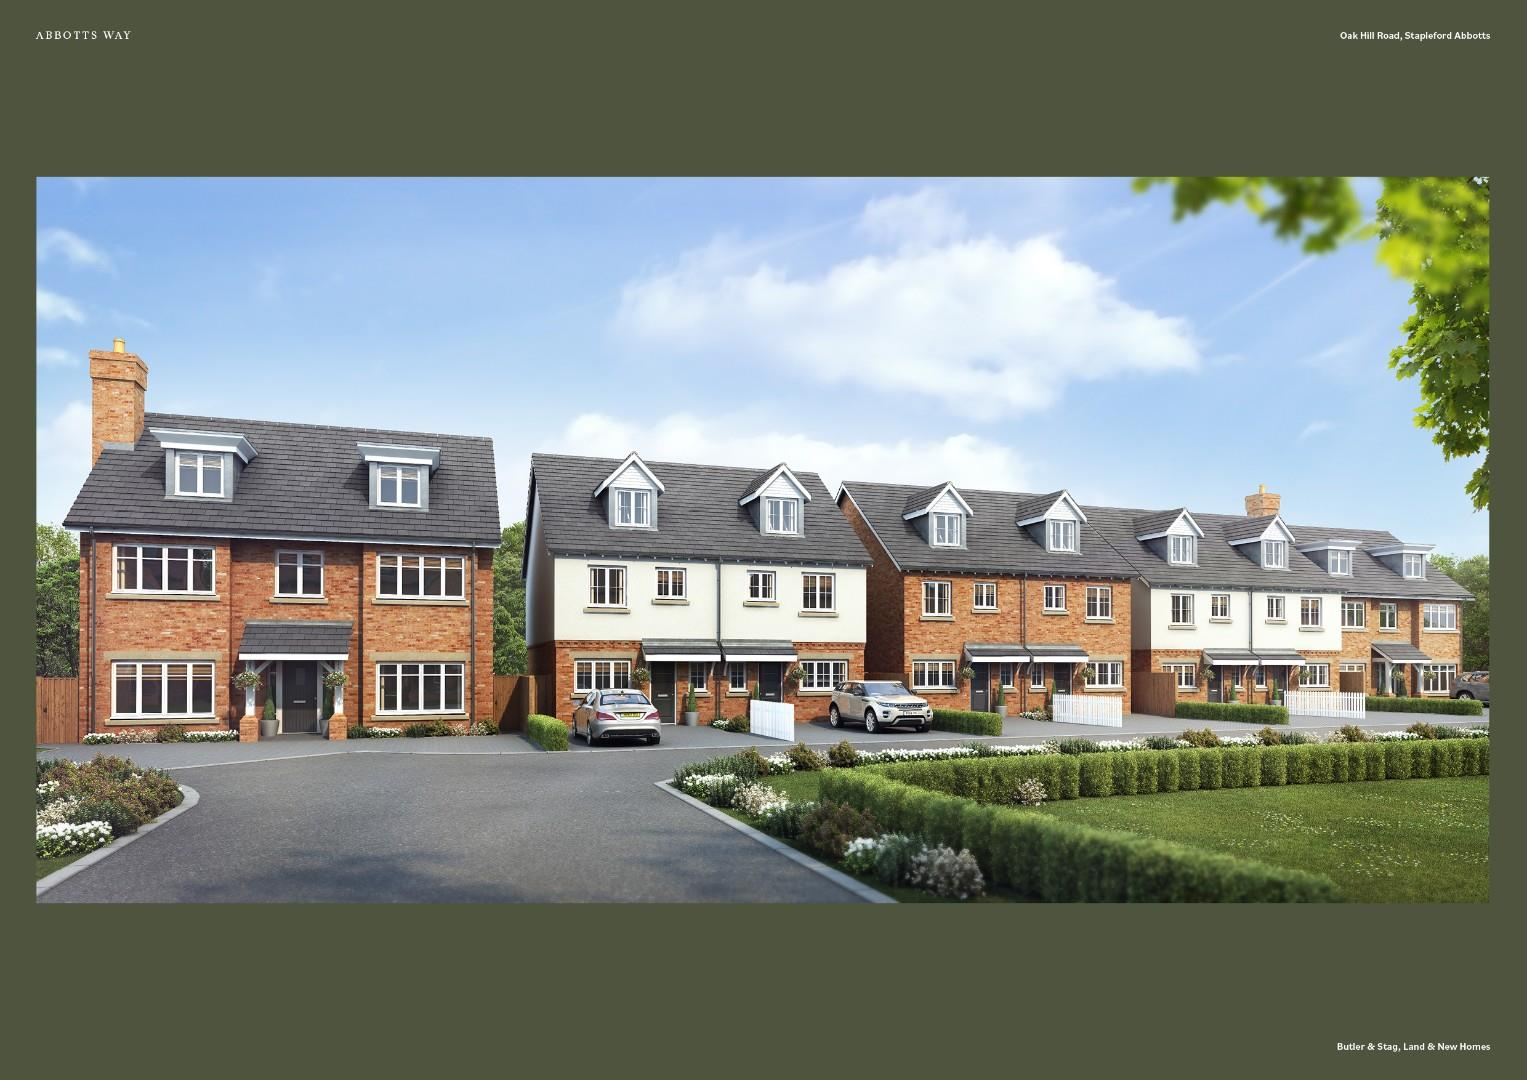 Abbots Way, all houses exterior.jpg